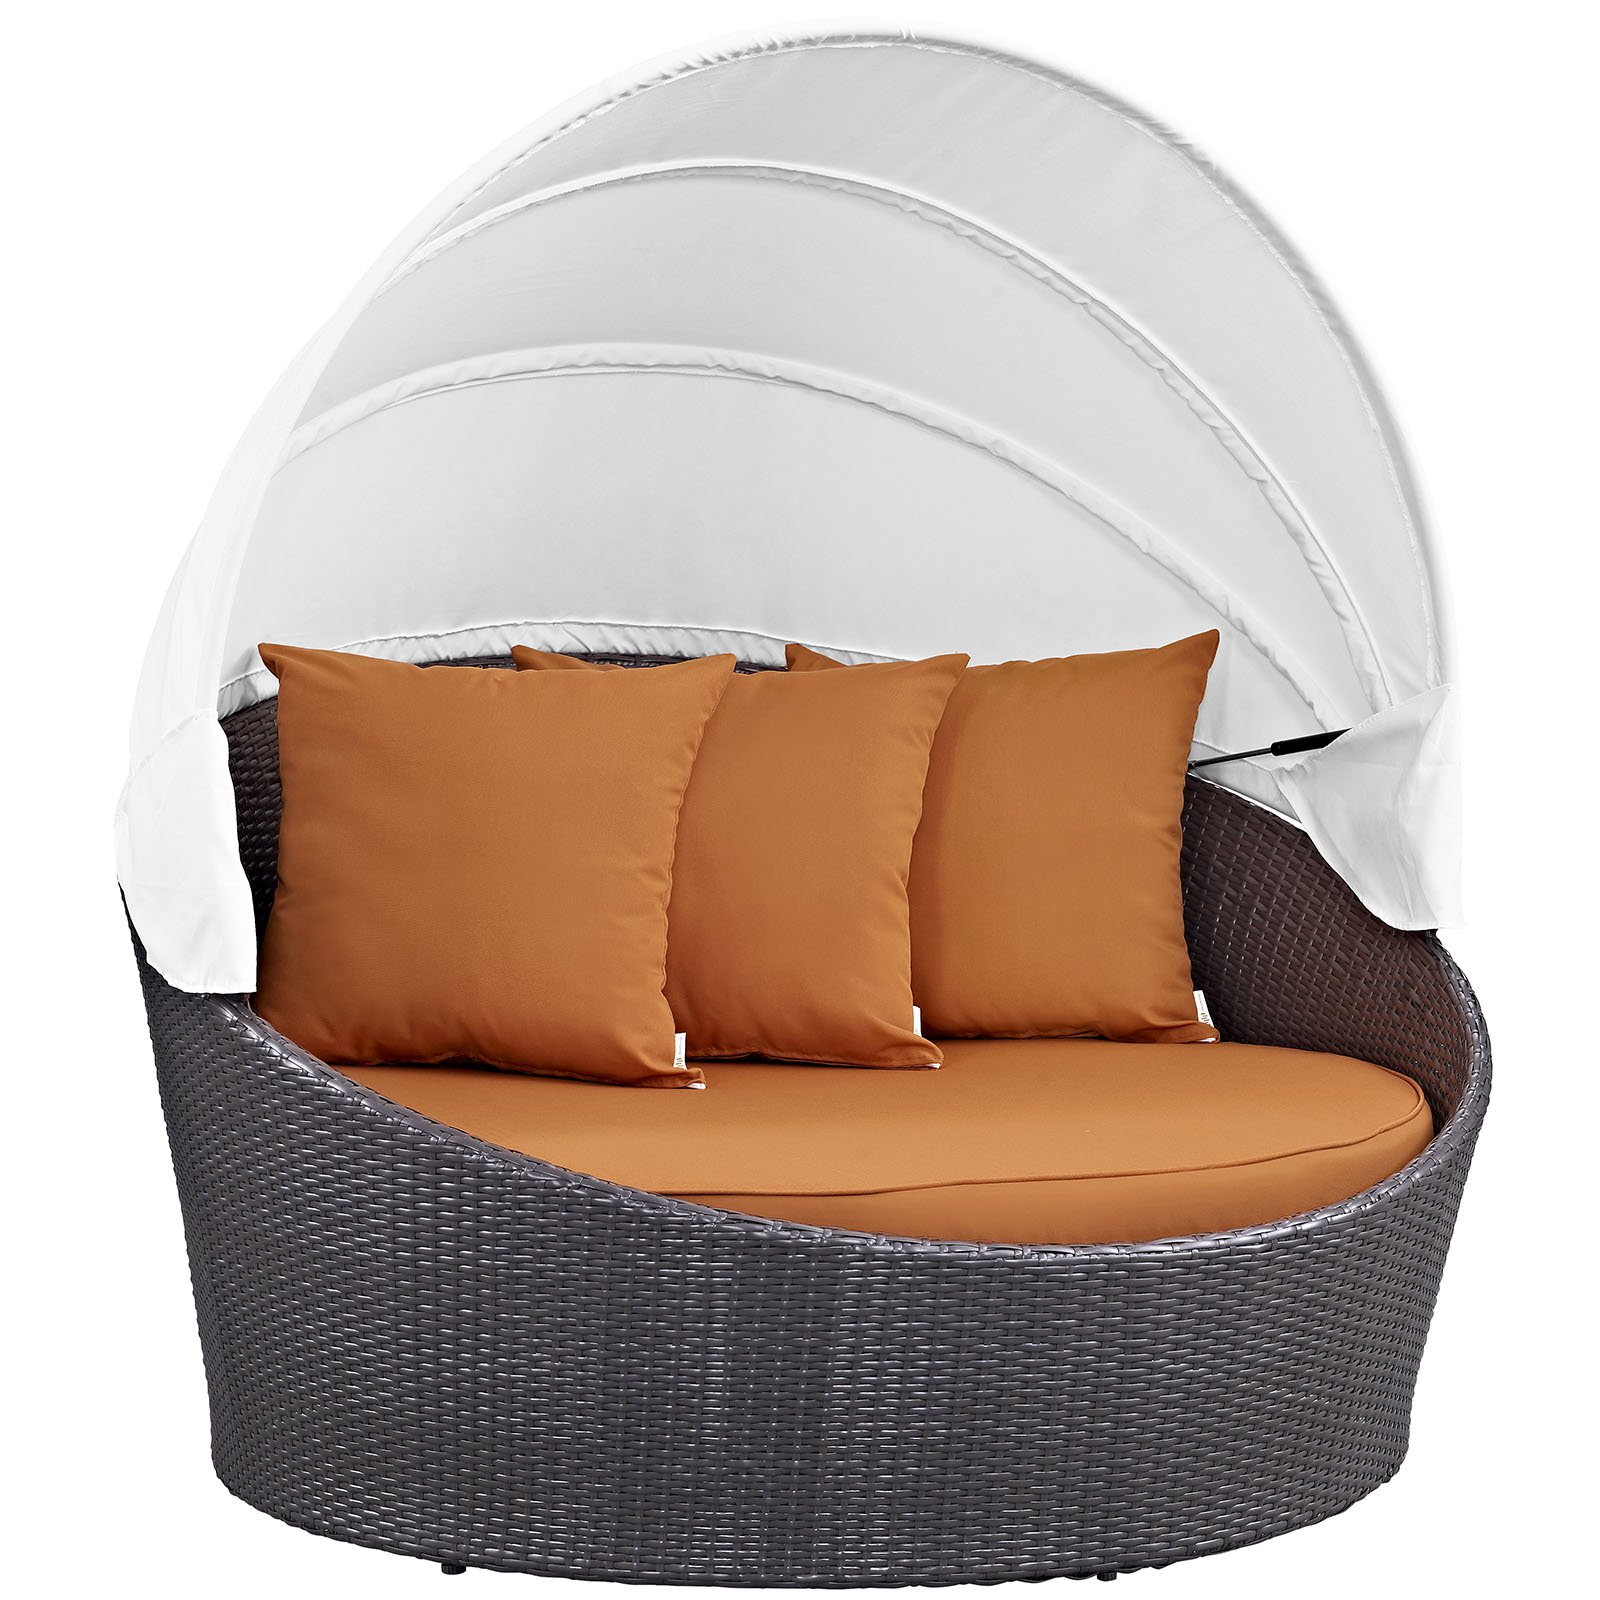 Modway Convene Canopy Outdoor Patio Daybed, Multiple Colors